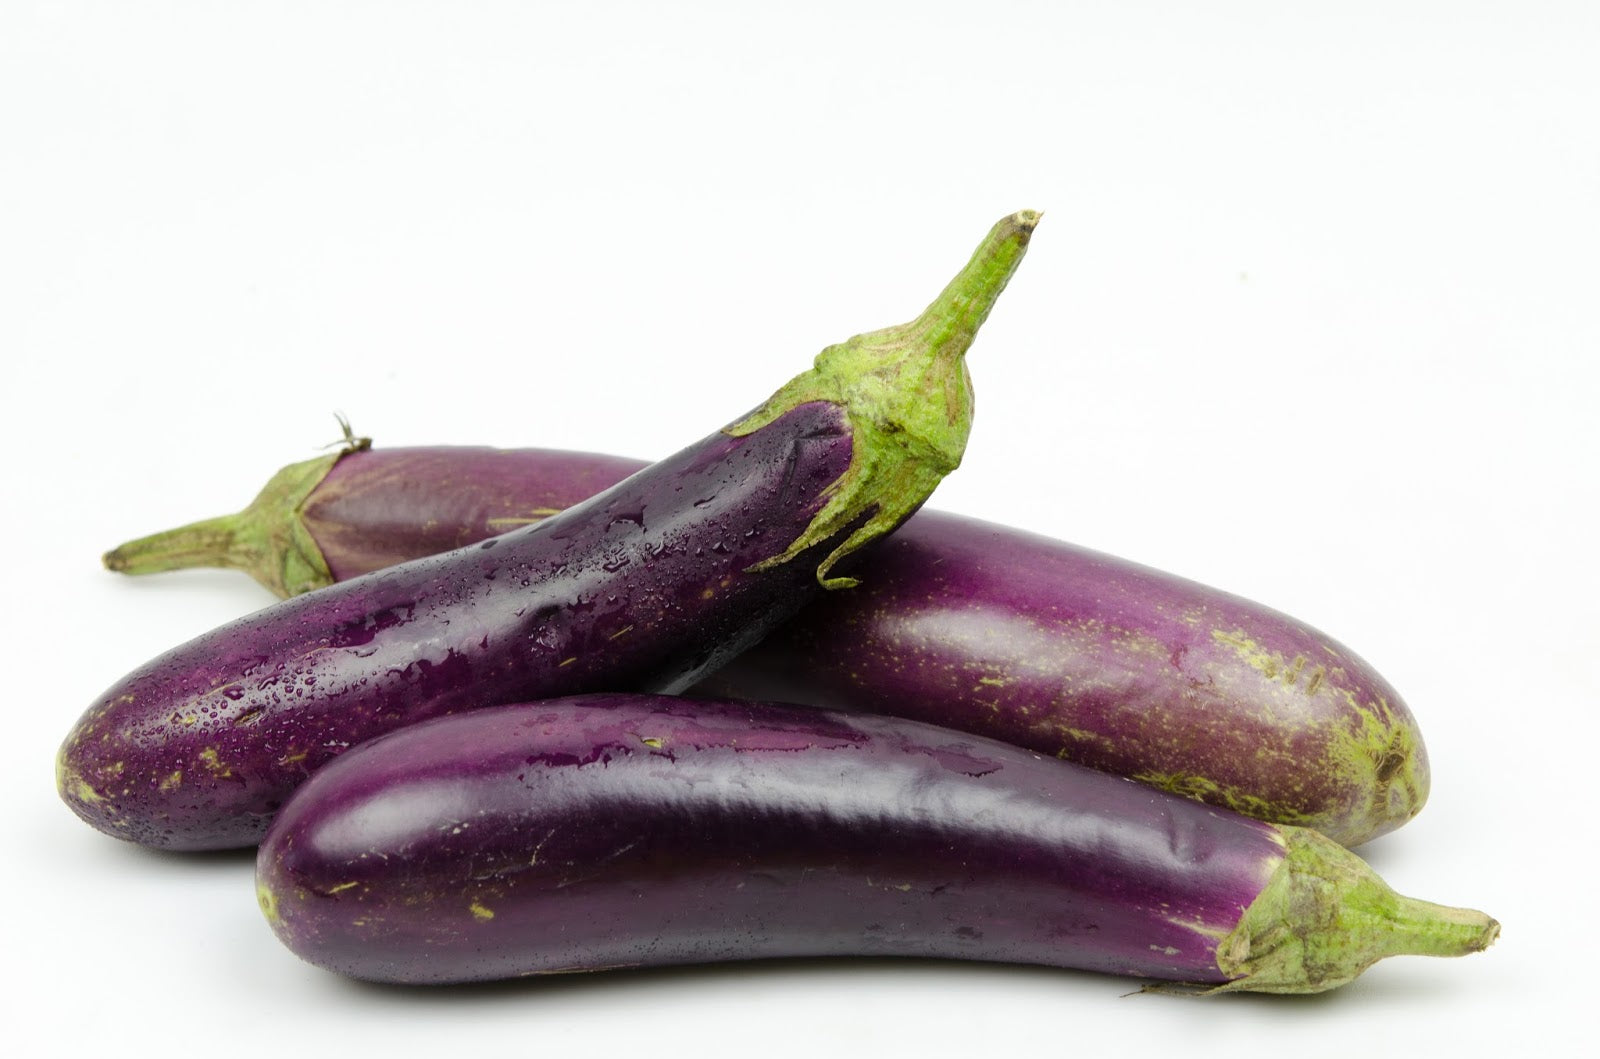 Vegetables - Organic Eggplant, Freshly Harvested from our Schools Farm